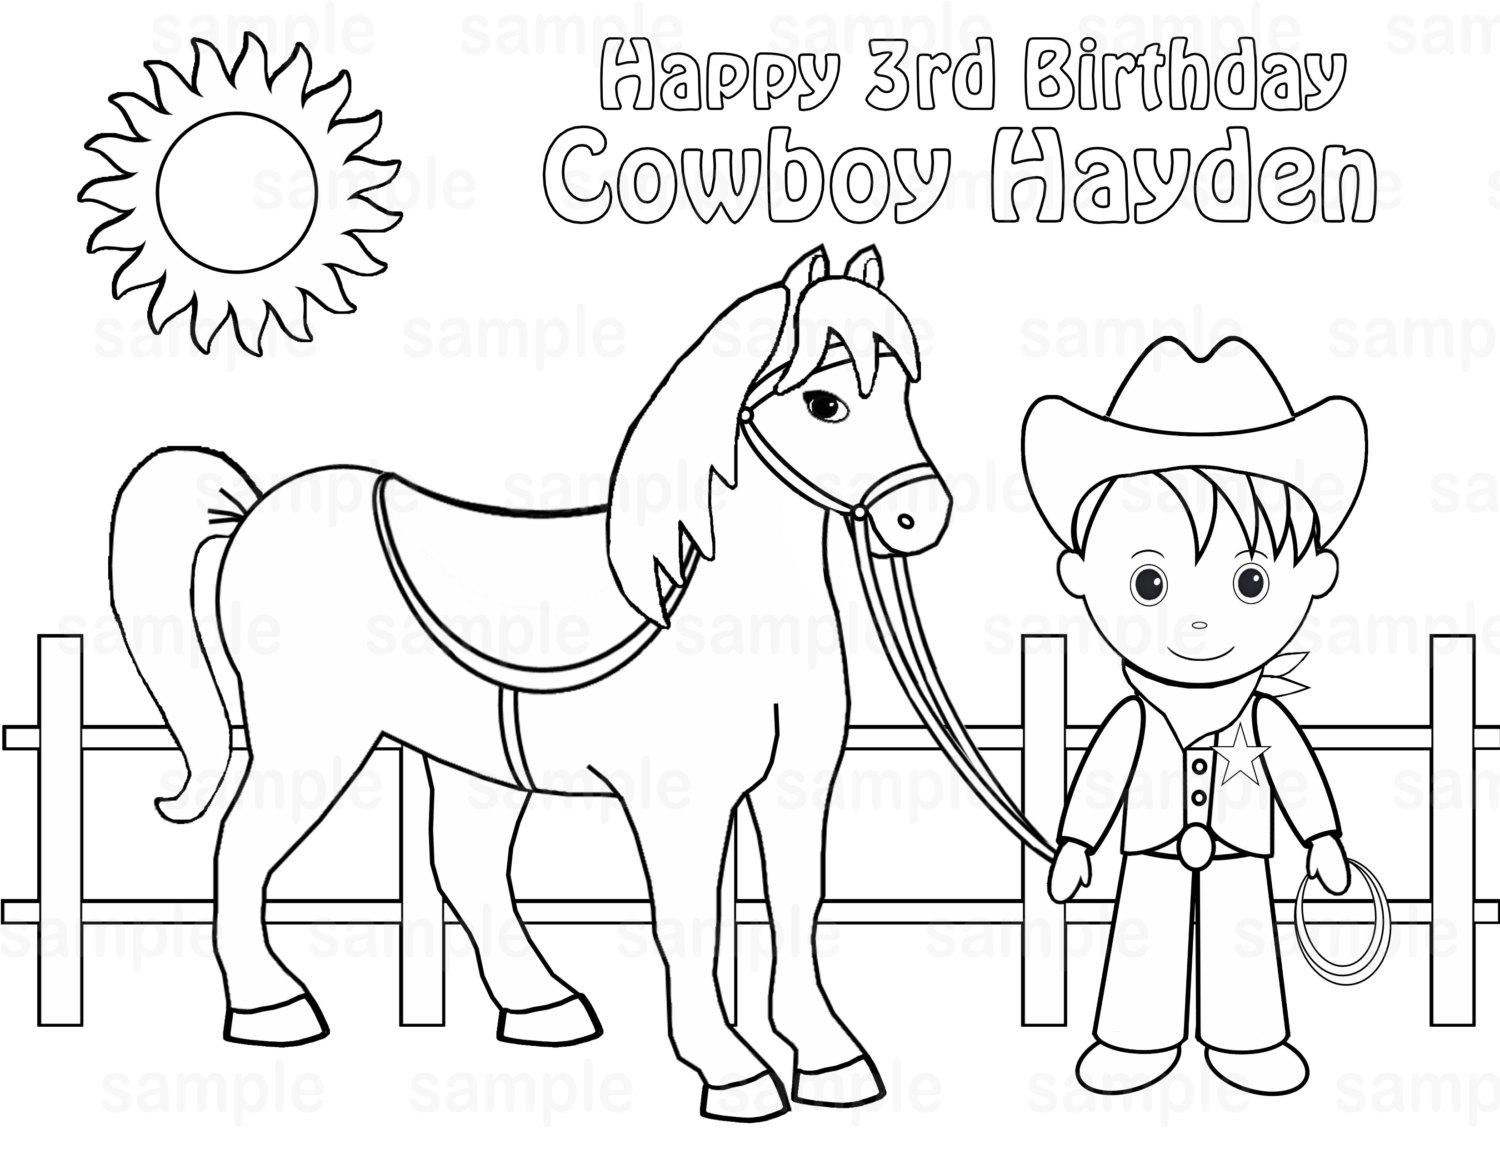 Horse And Cowboy Drawing At Getdrawings